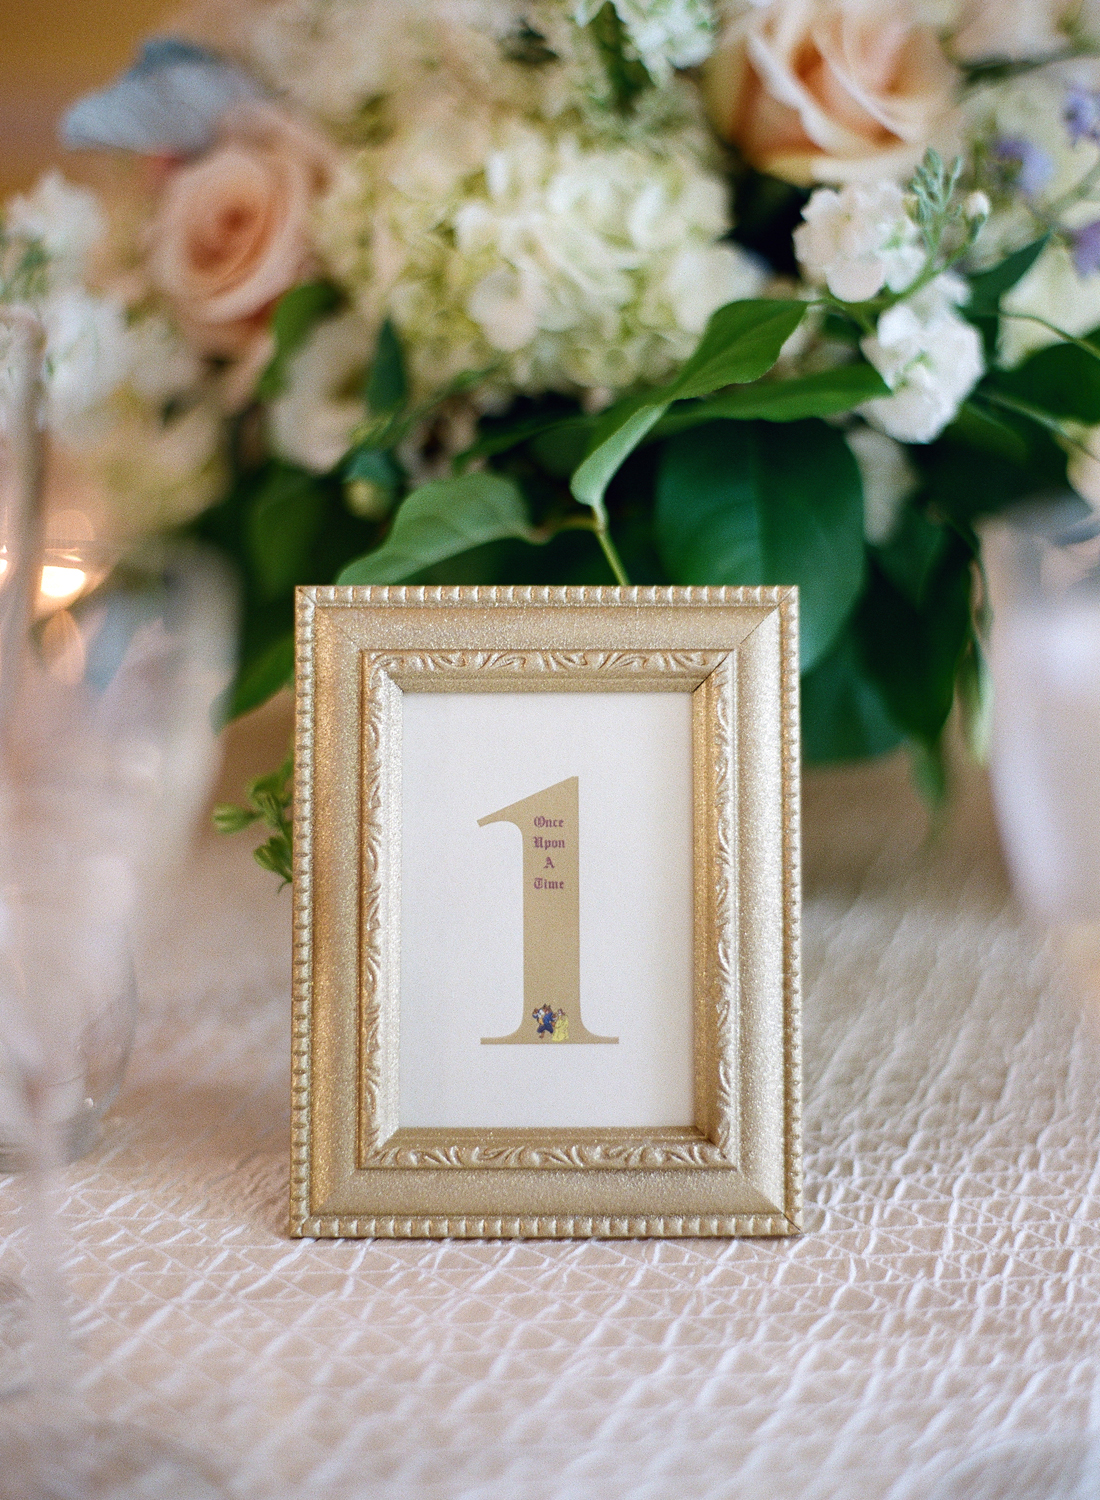 Dumbarton House Wedding Reception details